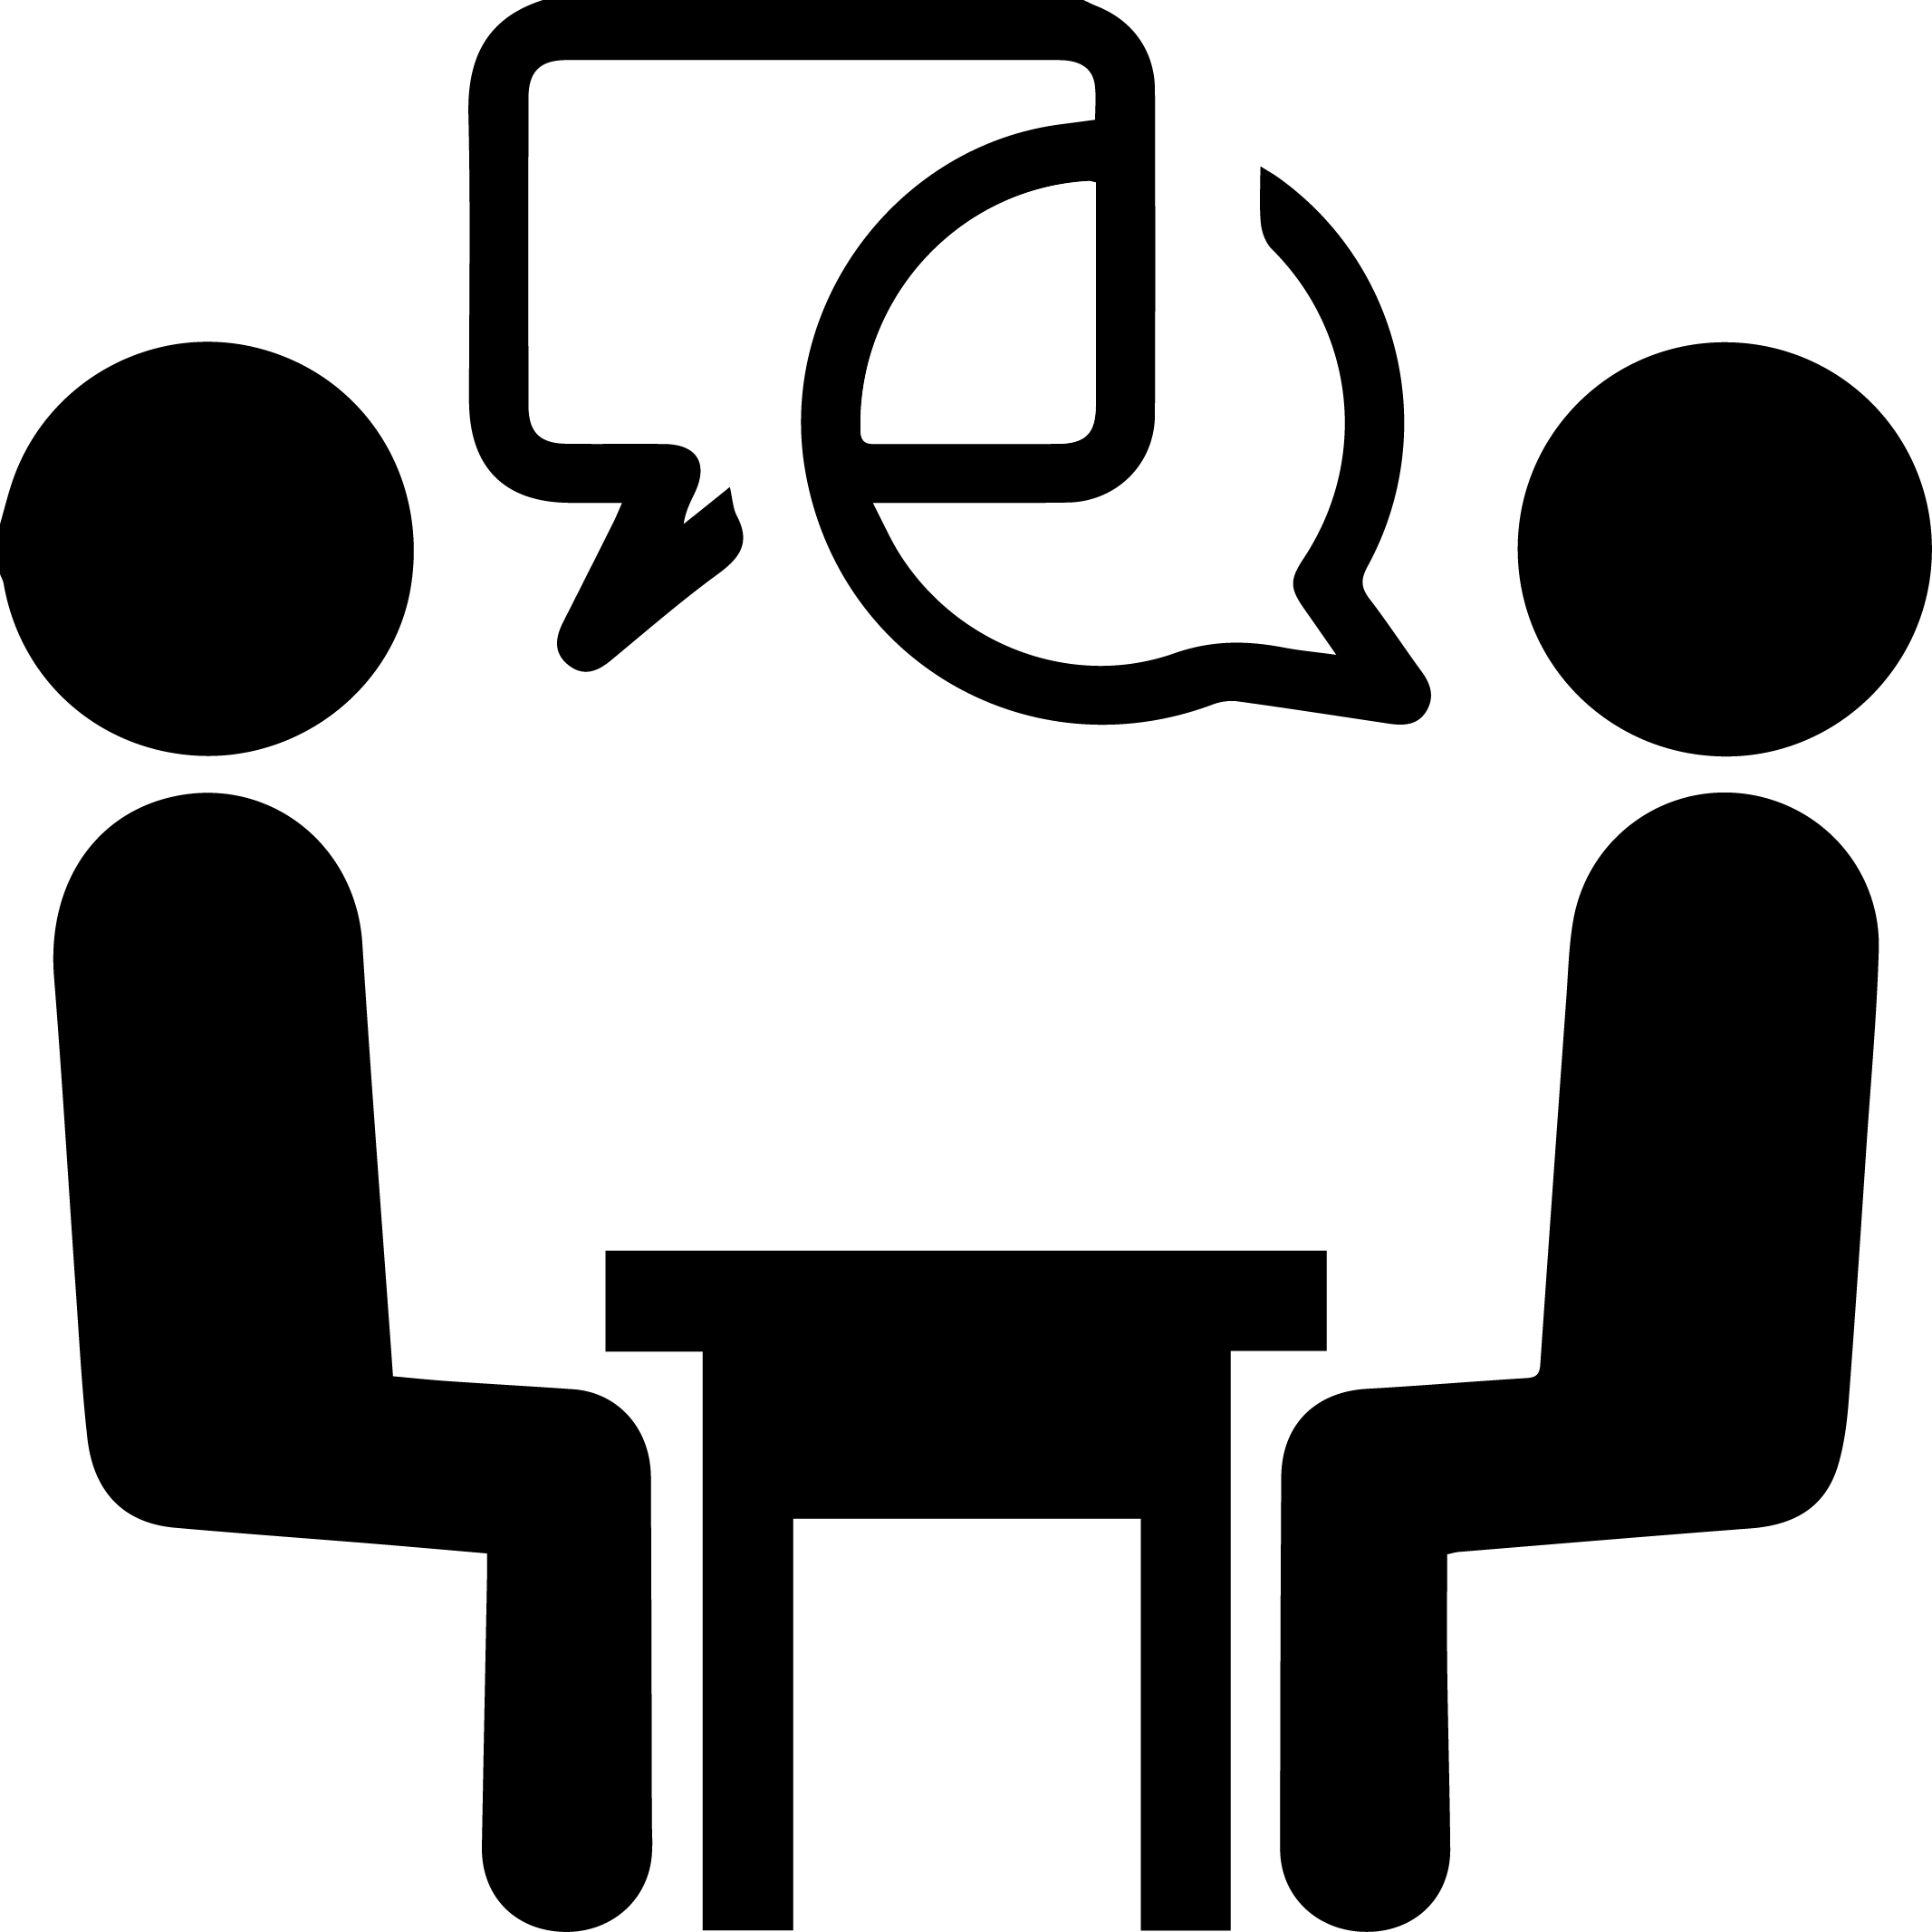 rsm352 group project in person intervi Group interviews are relatively easy if you work well in a team and are able to  make your ideas heard in a  project interview  in a panel interview, a group of  job seekers are asked several questions by a panel of people from the company.